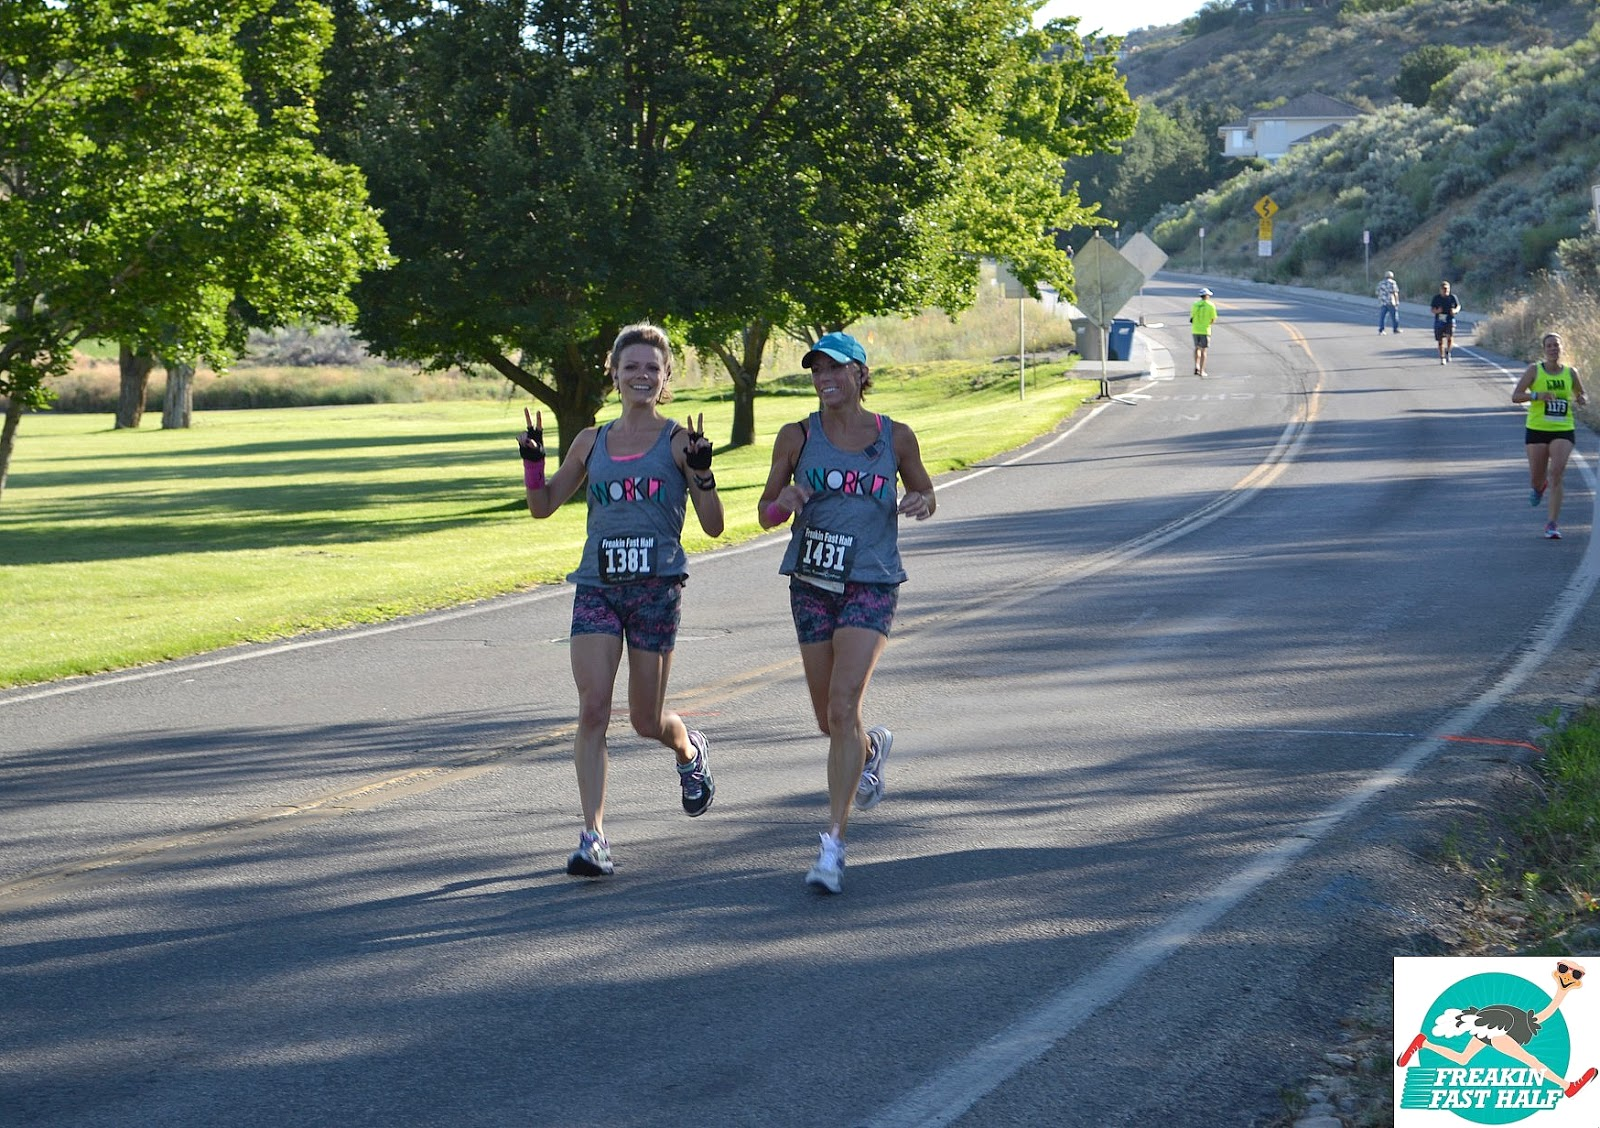 Freakin' Fast Half Marathon, Boise Runner, Downhill Half Marathon, Mom and Daughter Running Together